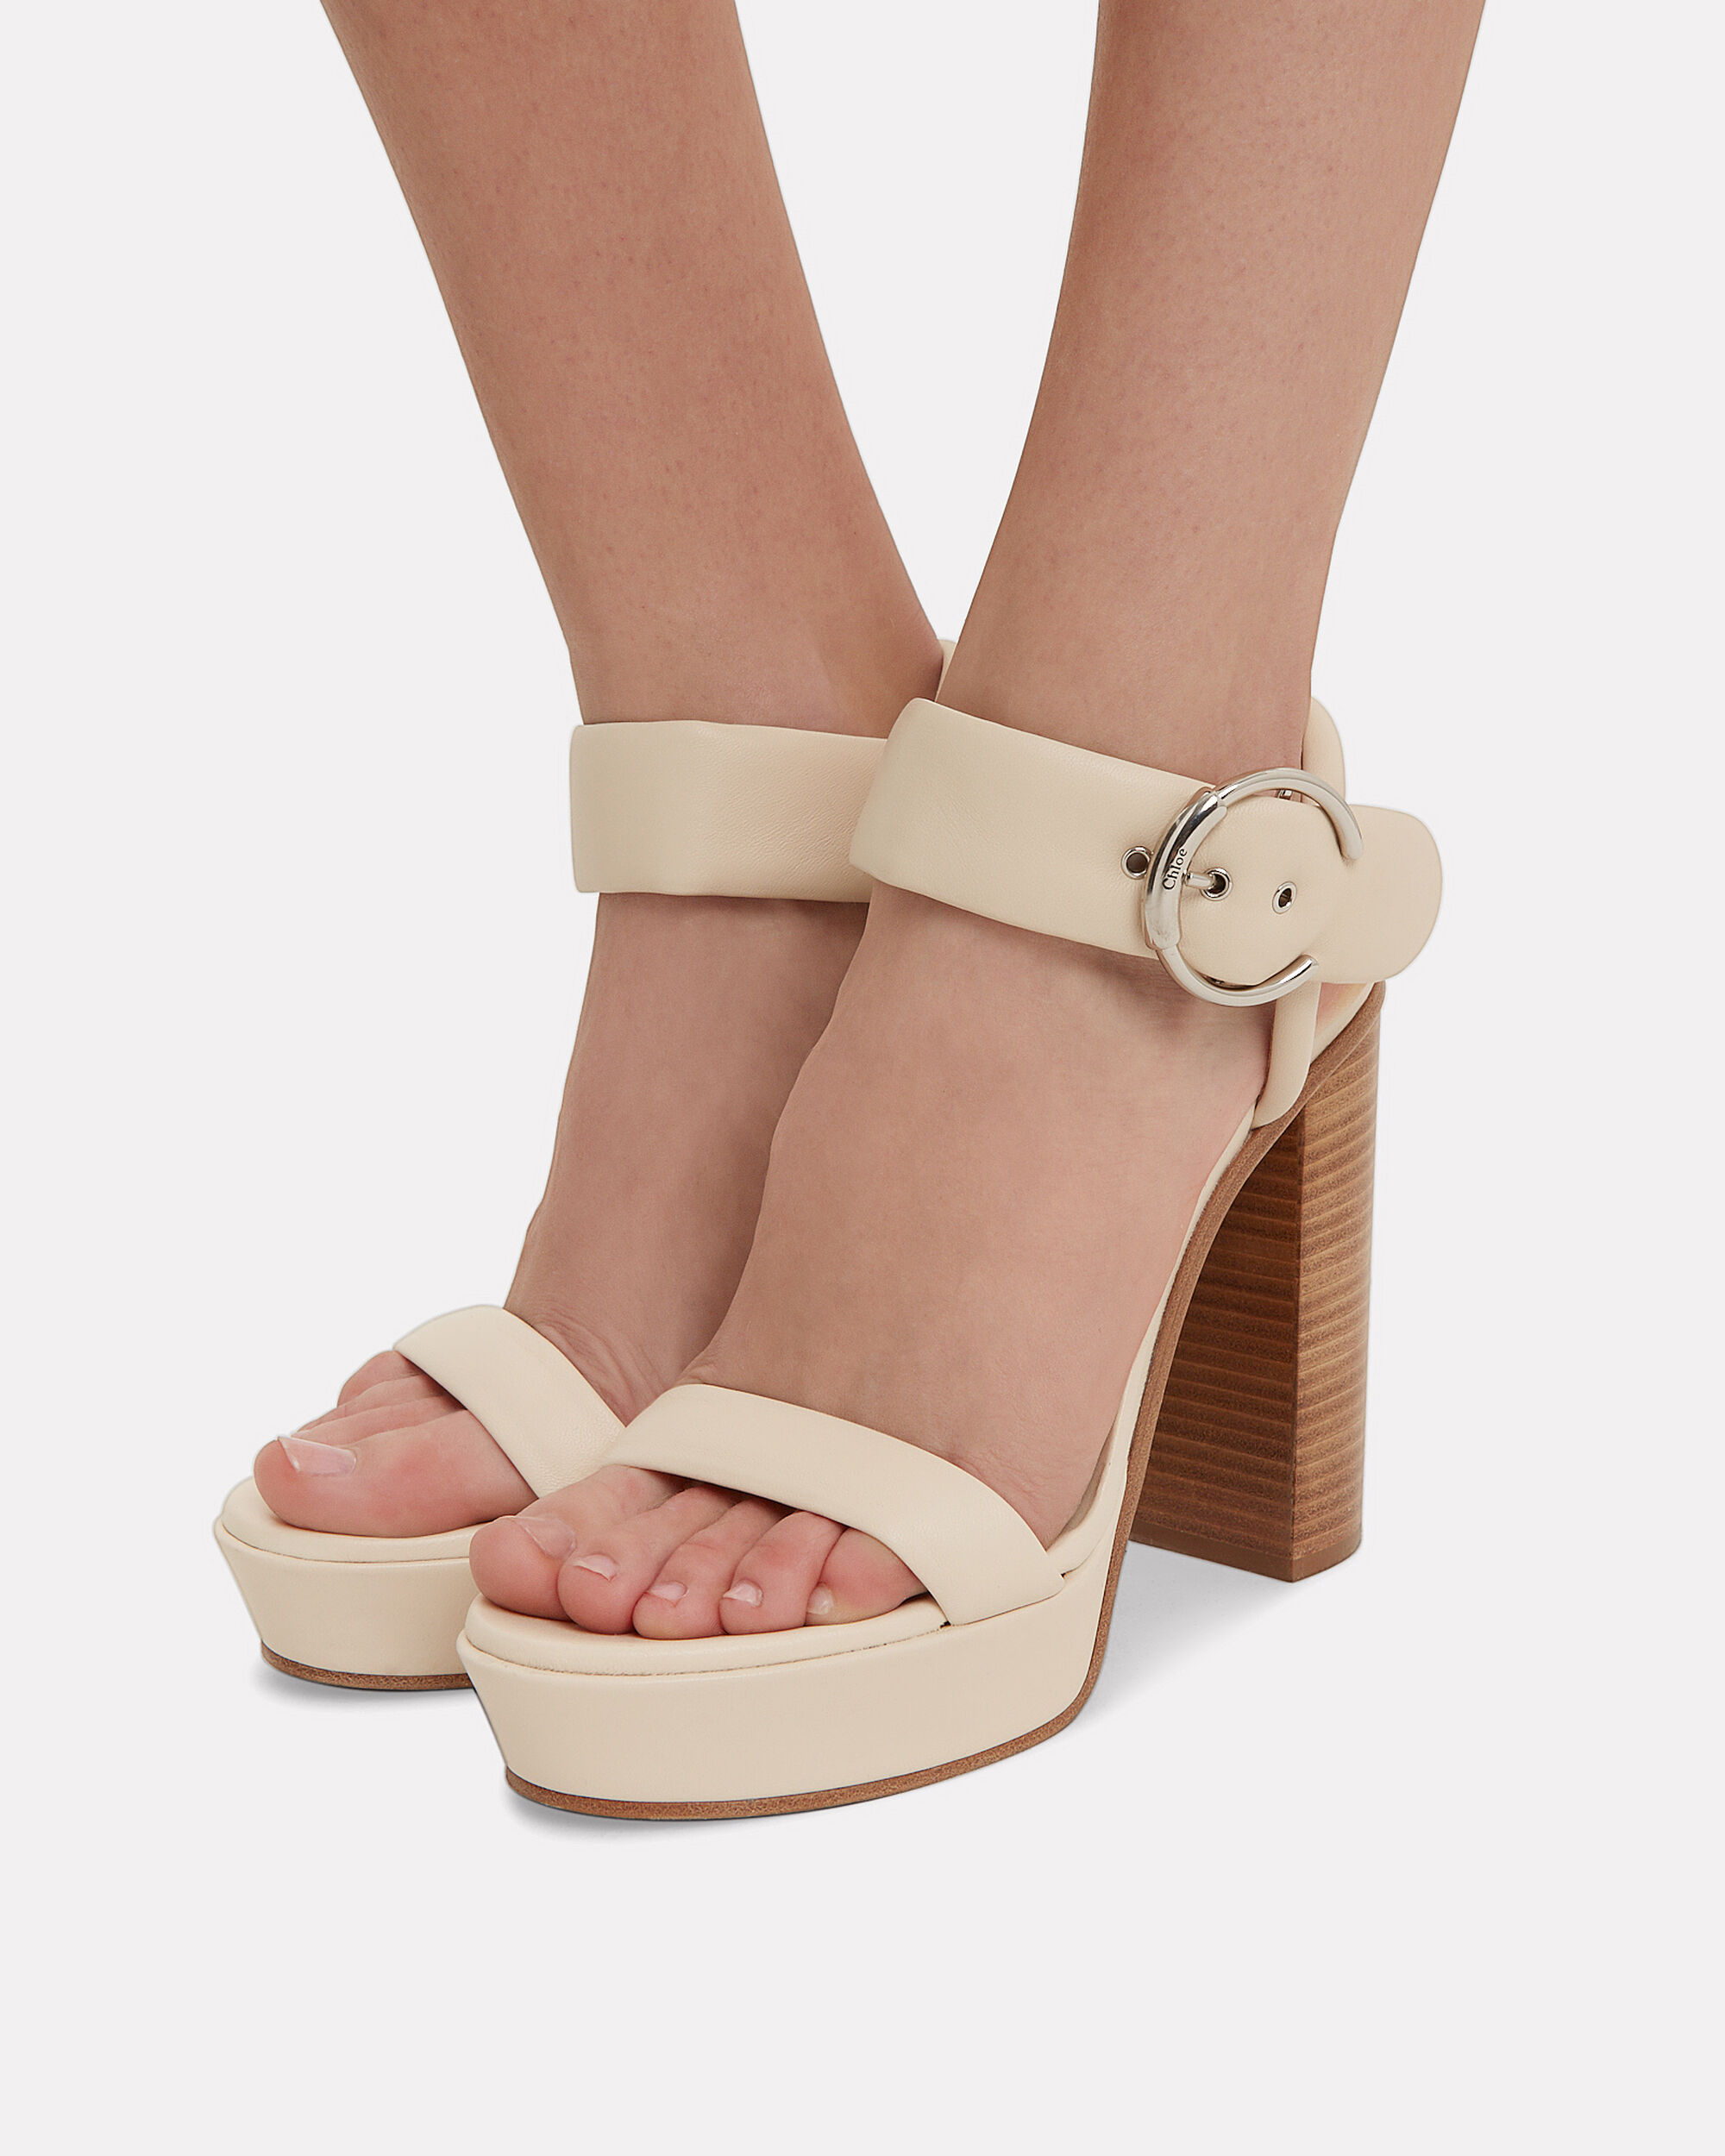 White Leather Stacked Heel Sandals, WHITE/BEIGE, hi-res